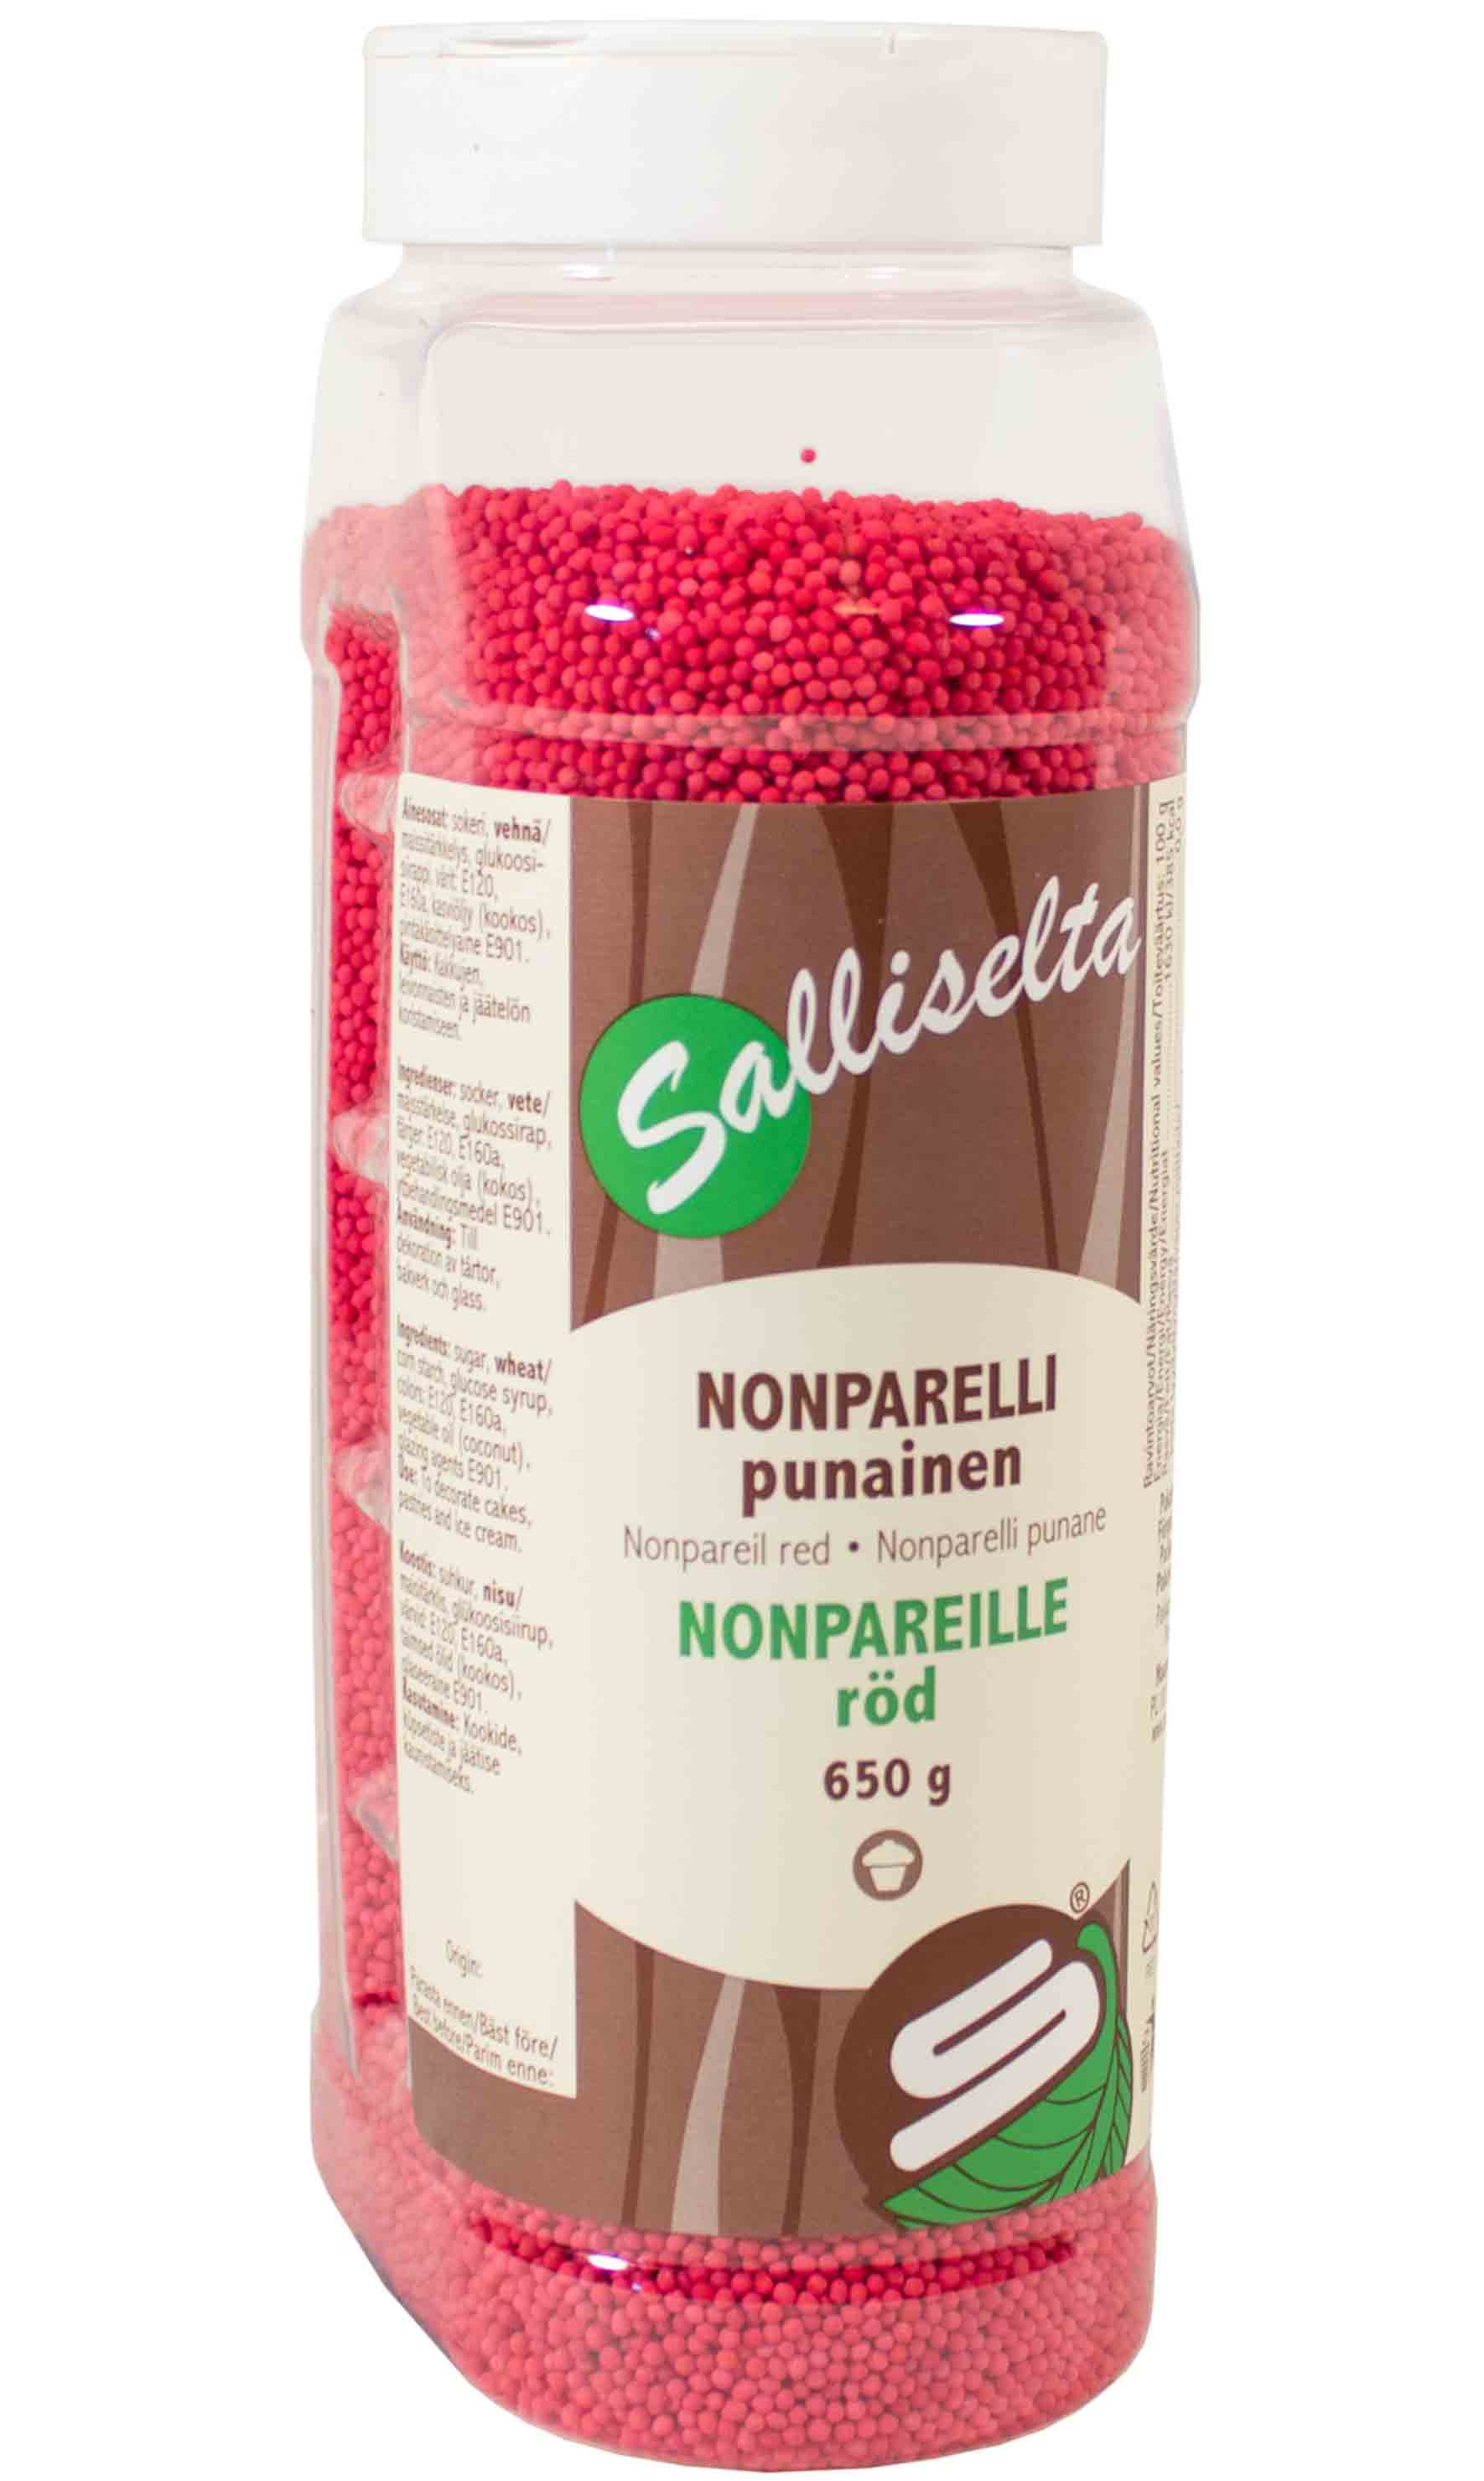 Nonpareils red 650 g